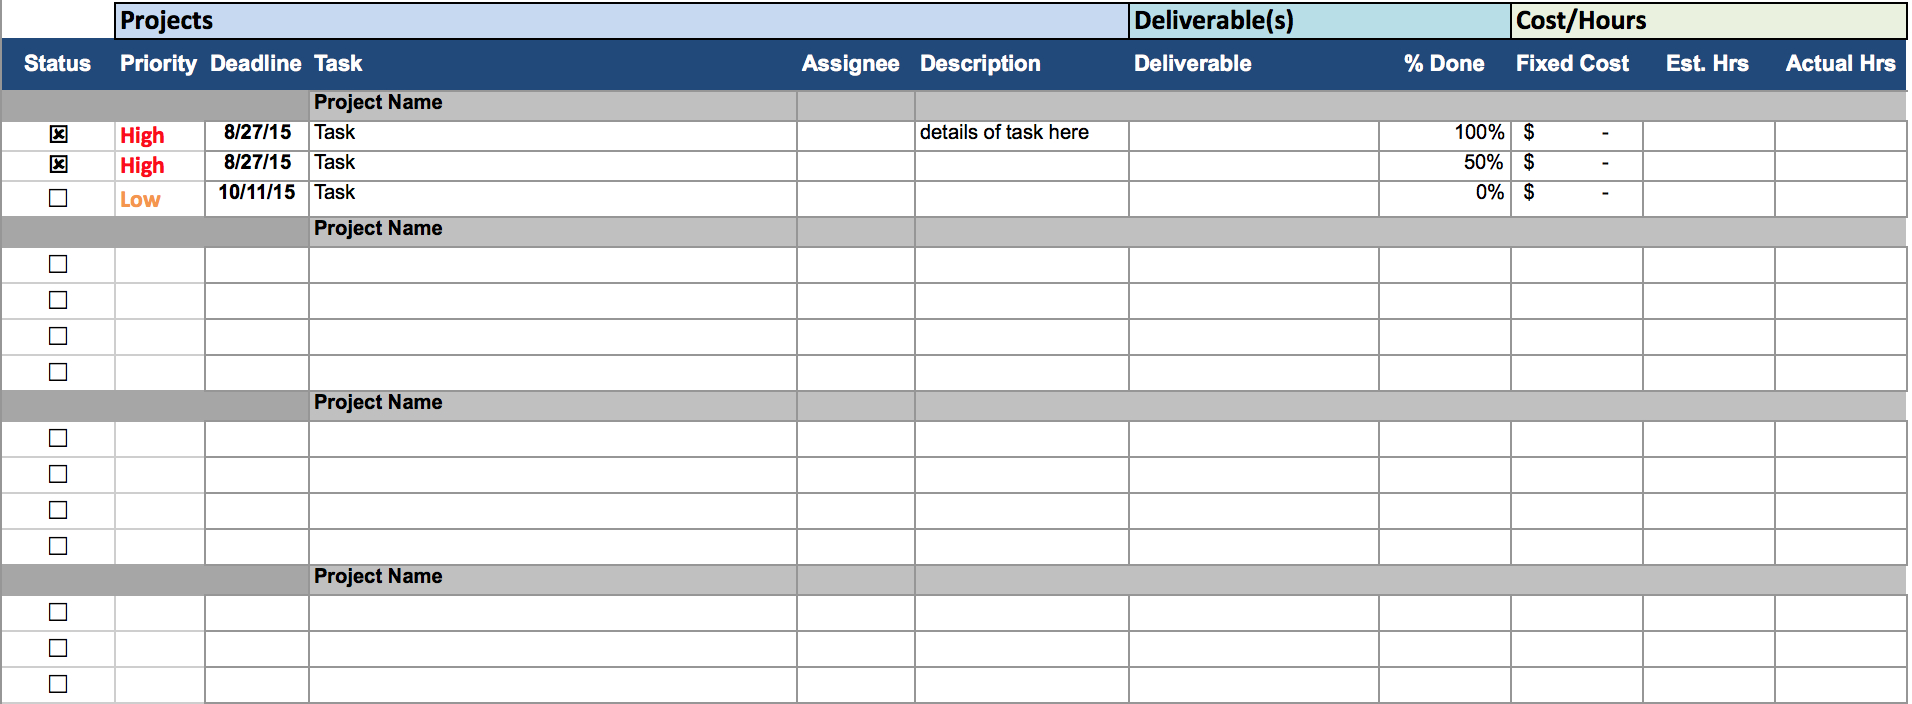 Data Tracking Spreadsheet Template Excel   Papillon Northwan Throughout Excel Spreadsheet Templates Tracking